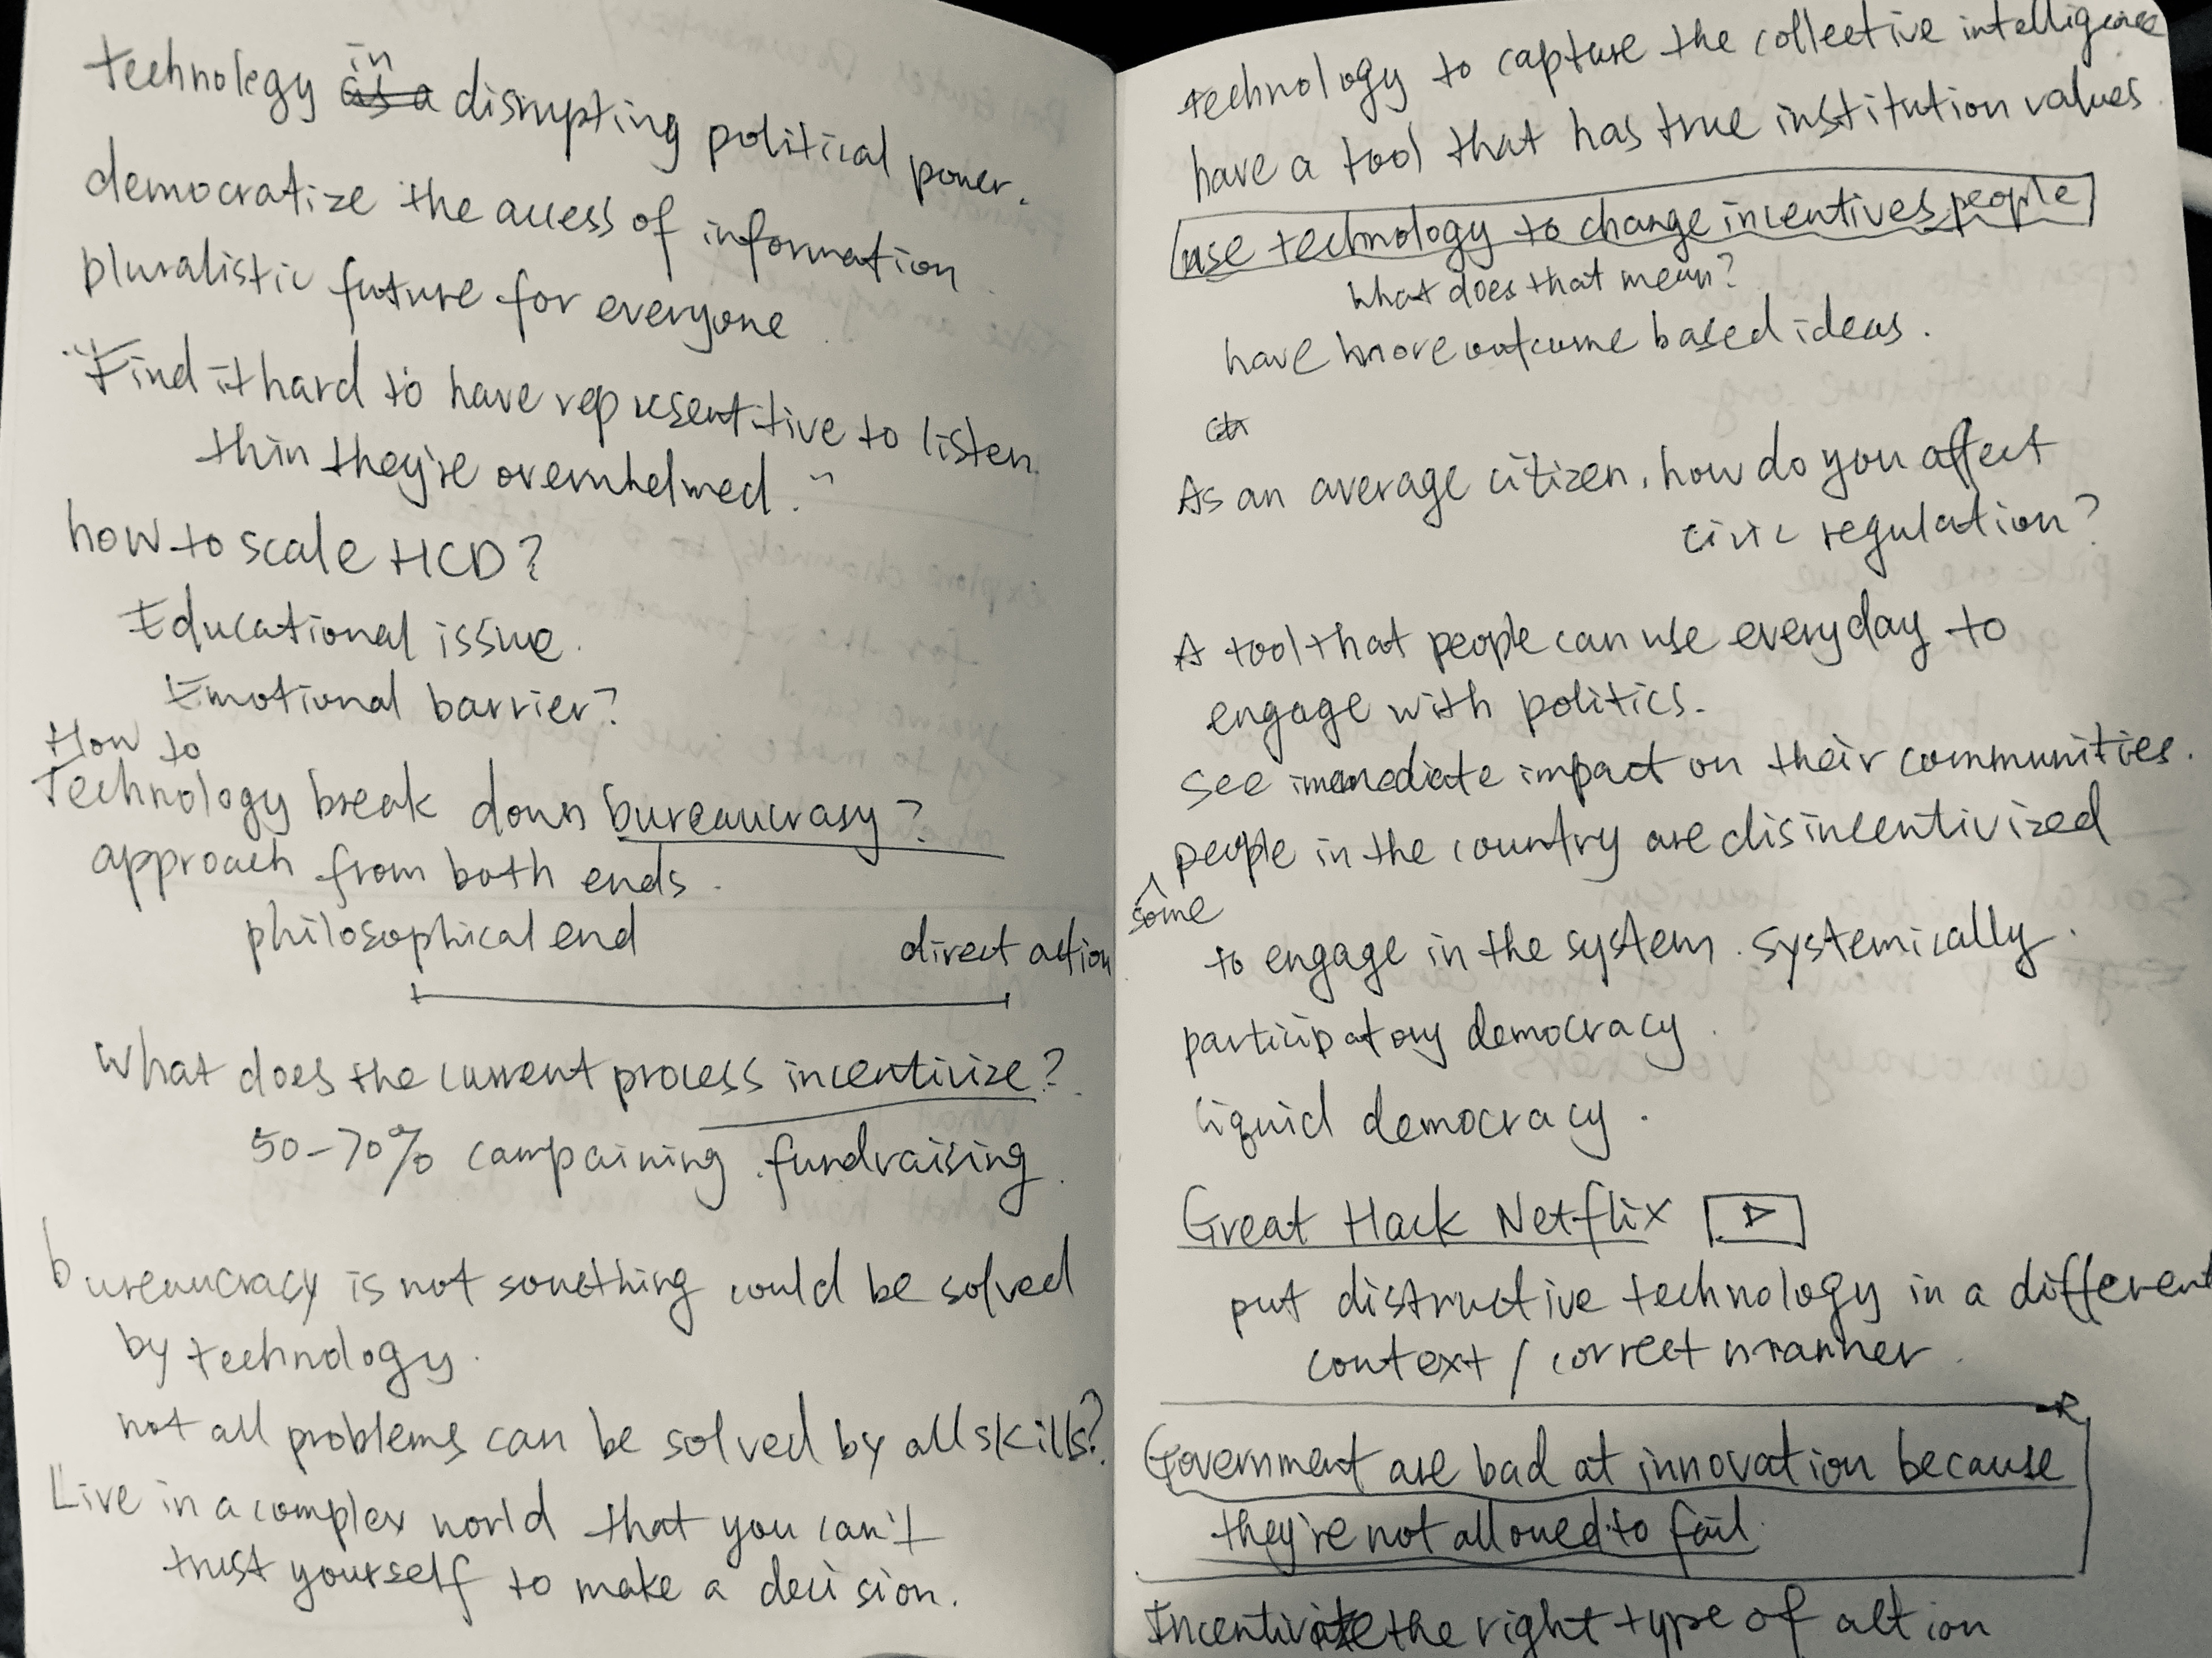 Notes on The Future Role of Technology in Disrupting Political Power @Tara Lin